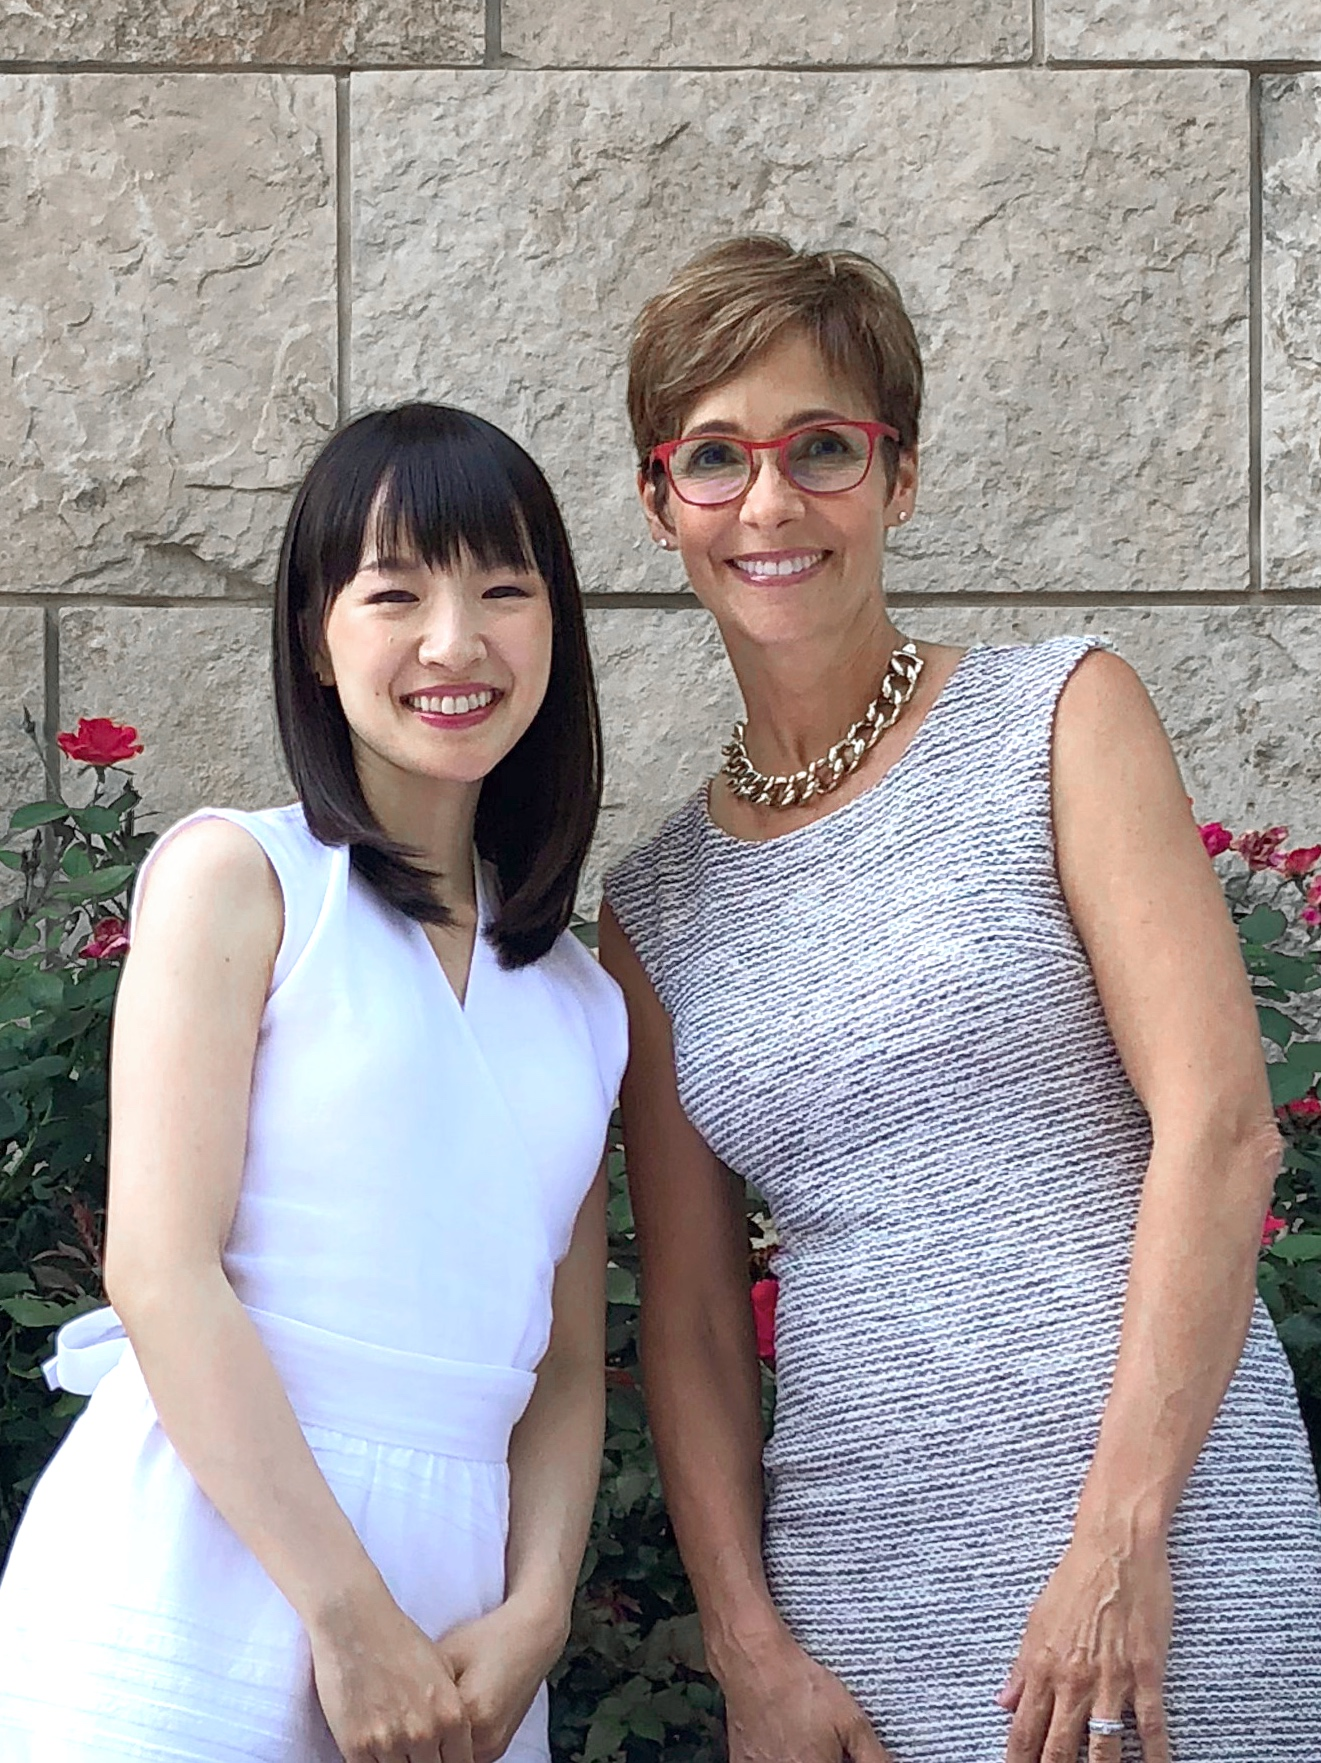 Marie Kondo and I at the KonMari Consultant Retreat, June 2018